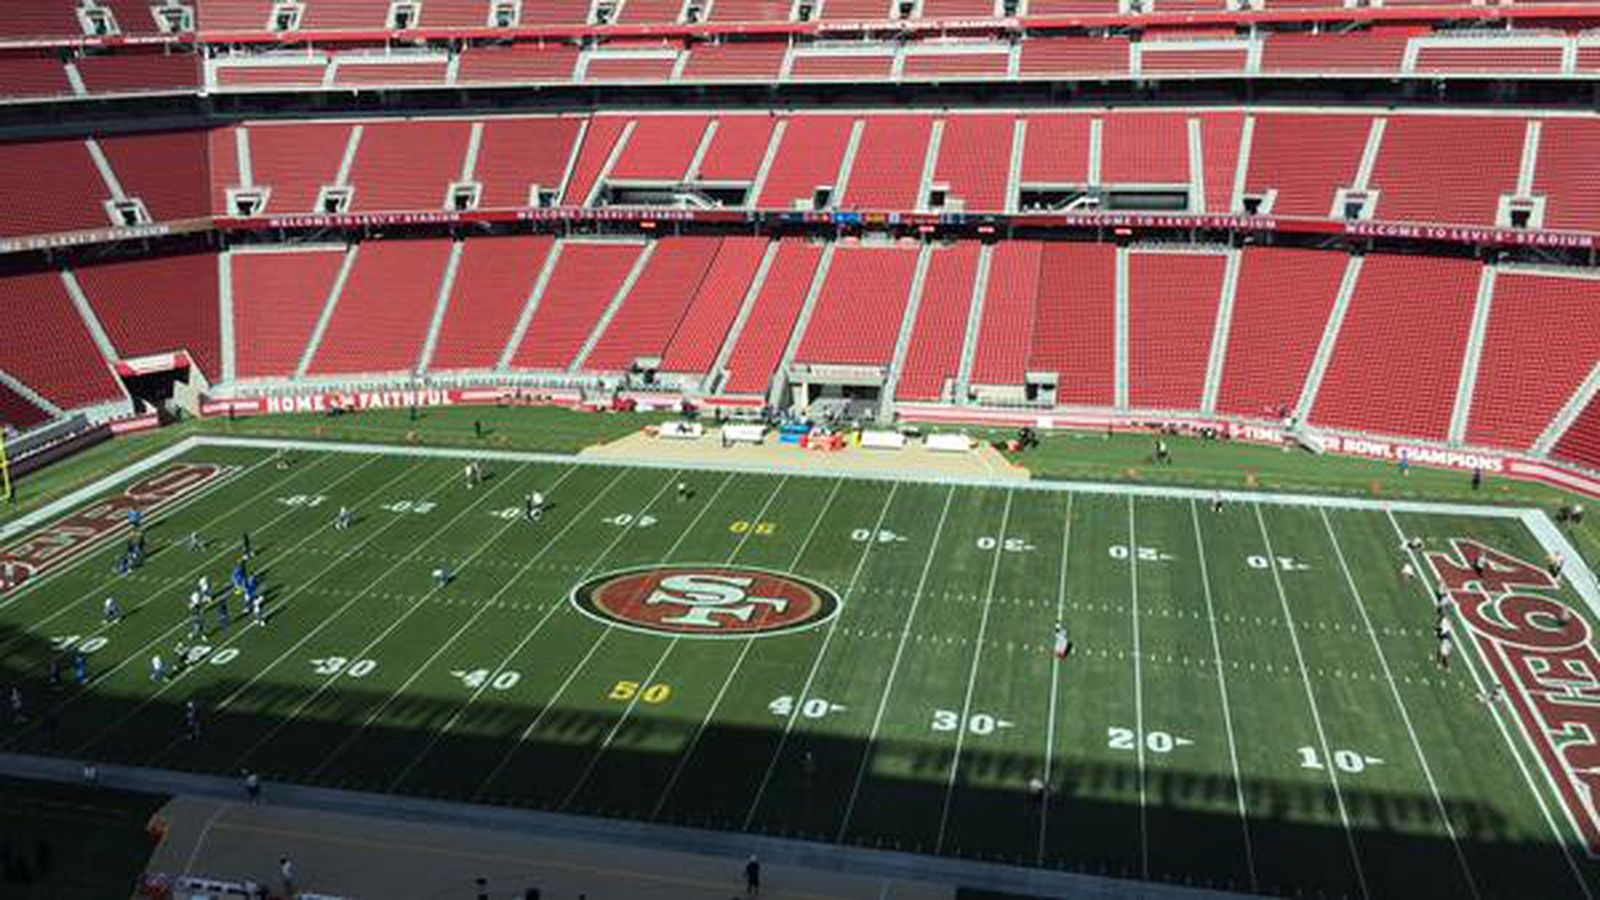 49ers Chargers Back To Assess The Levi S Stadium Field Condition Niners Nation